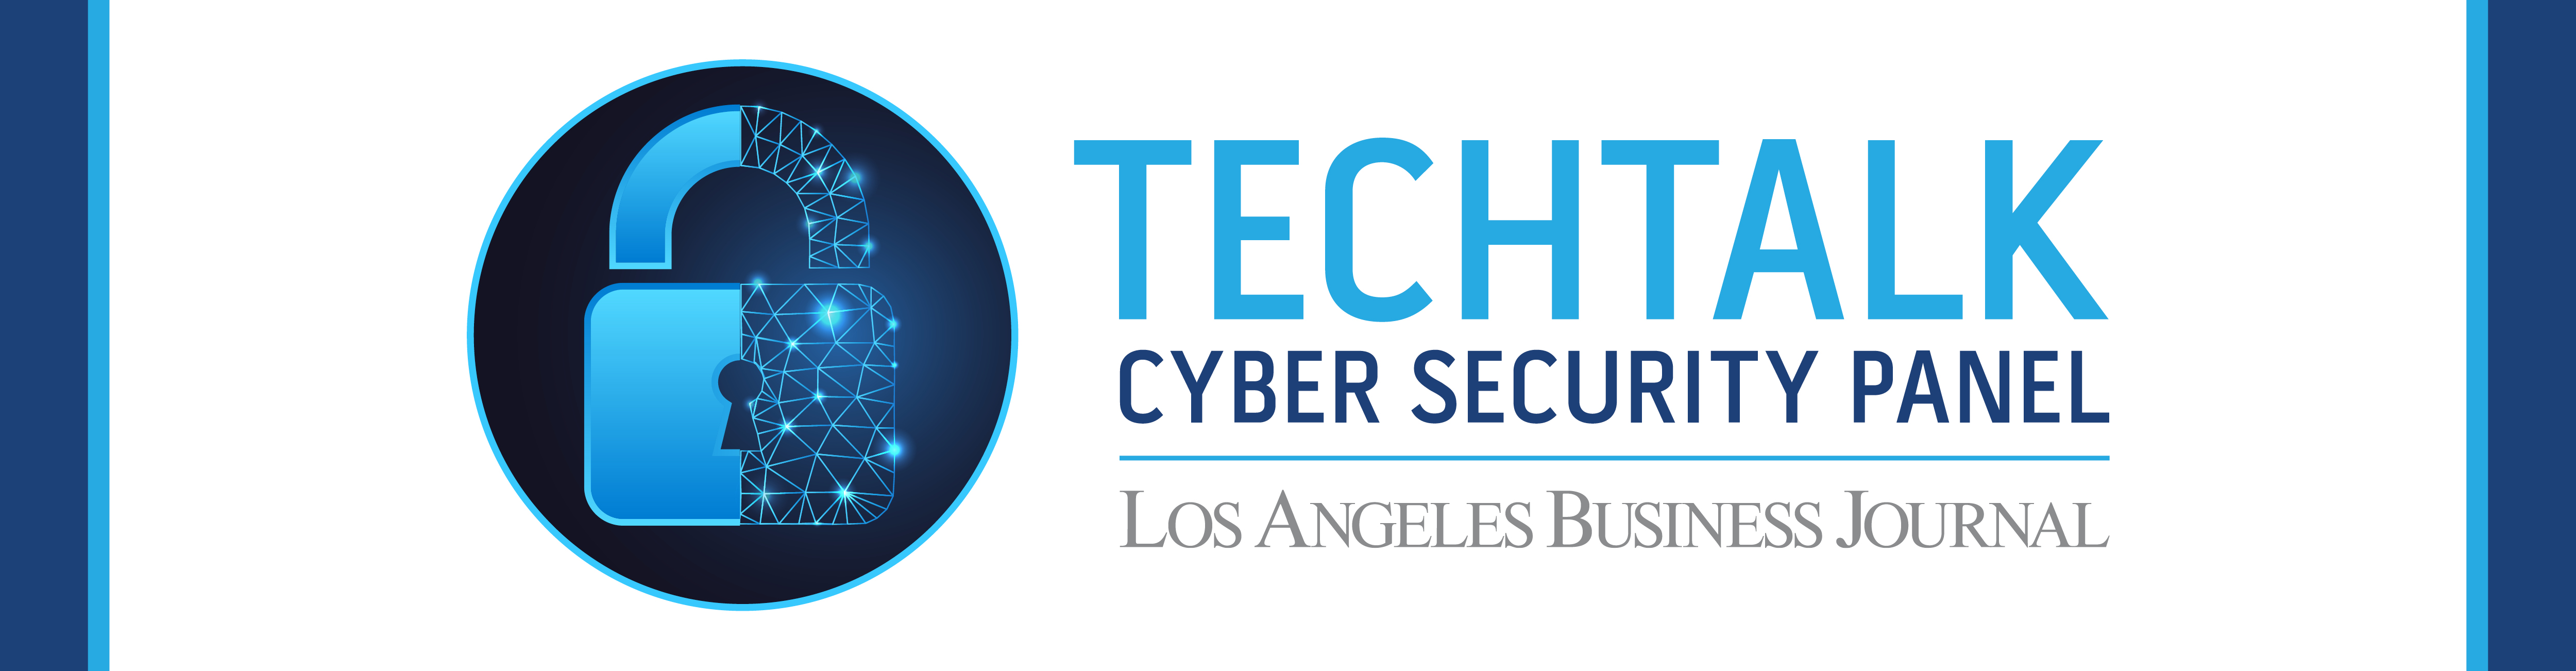 Los Angeles Business Journal TechTalk Cyber Security Event Banner